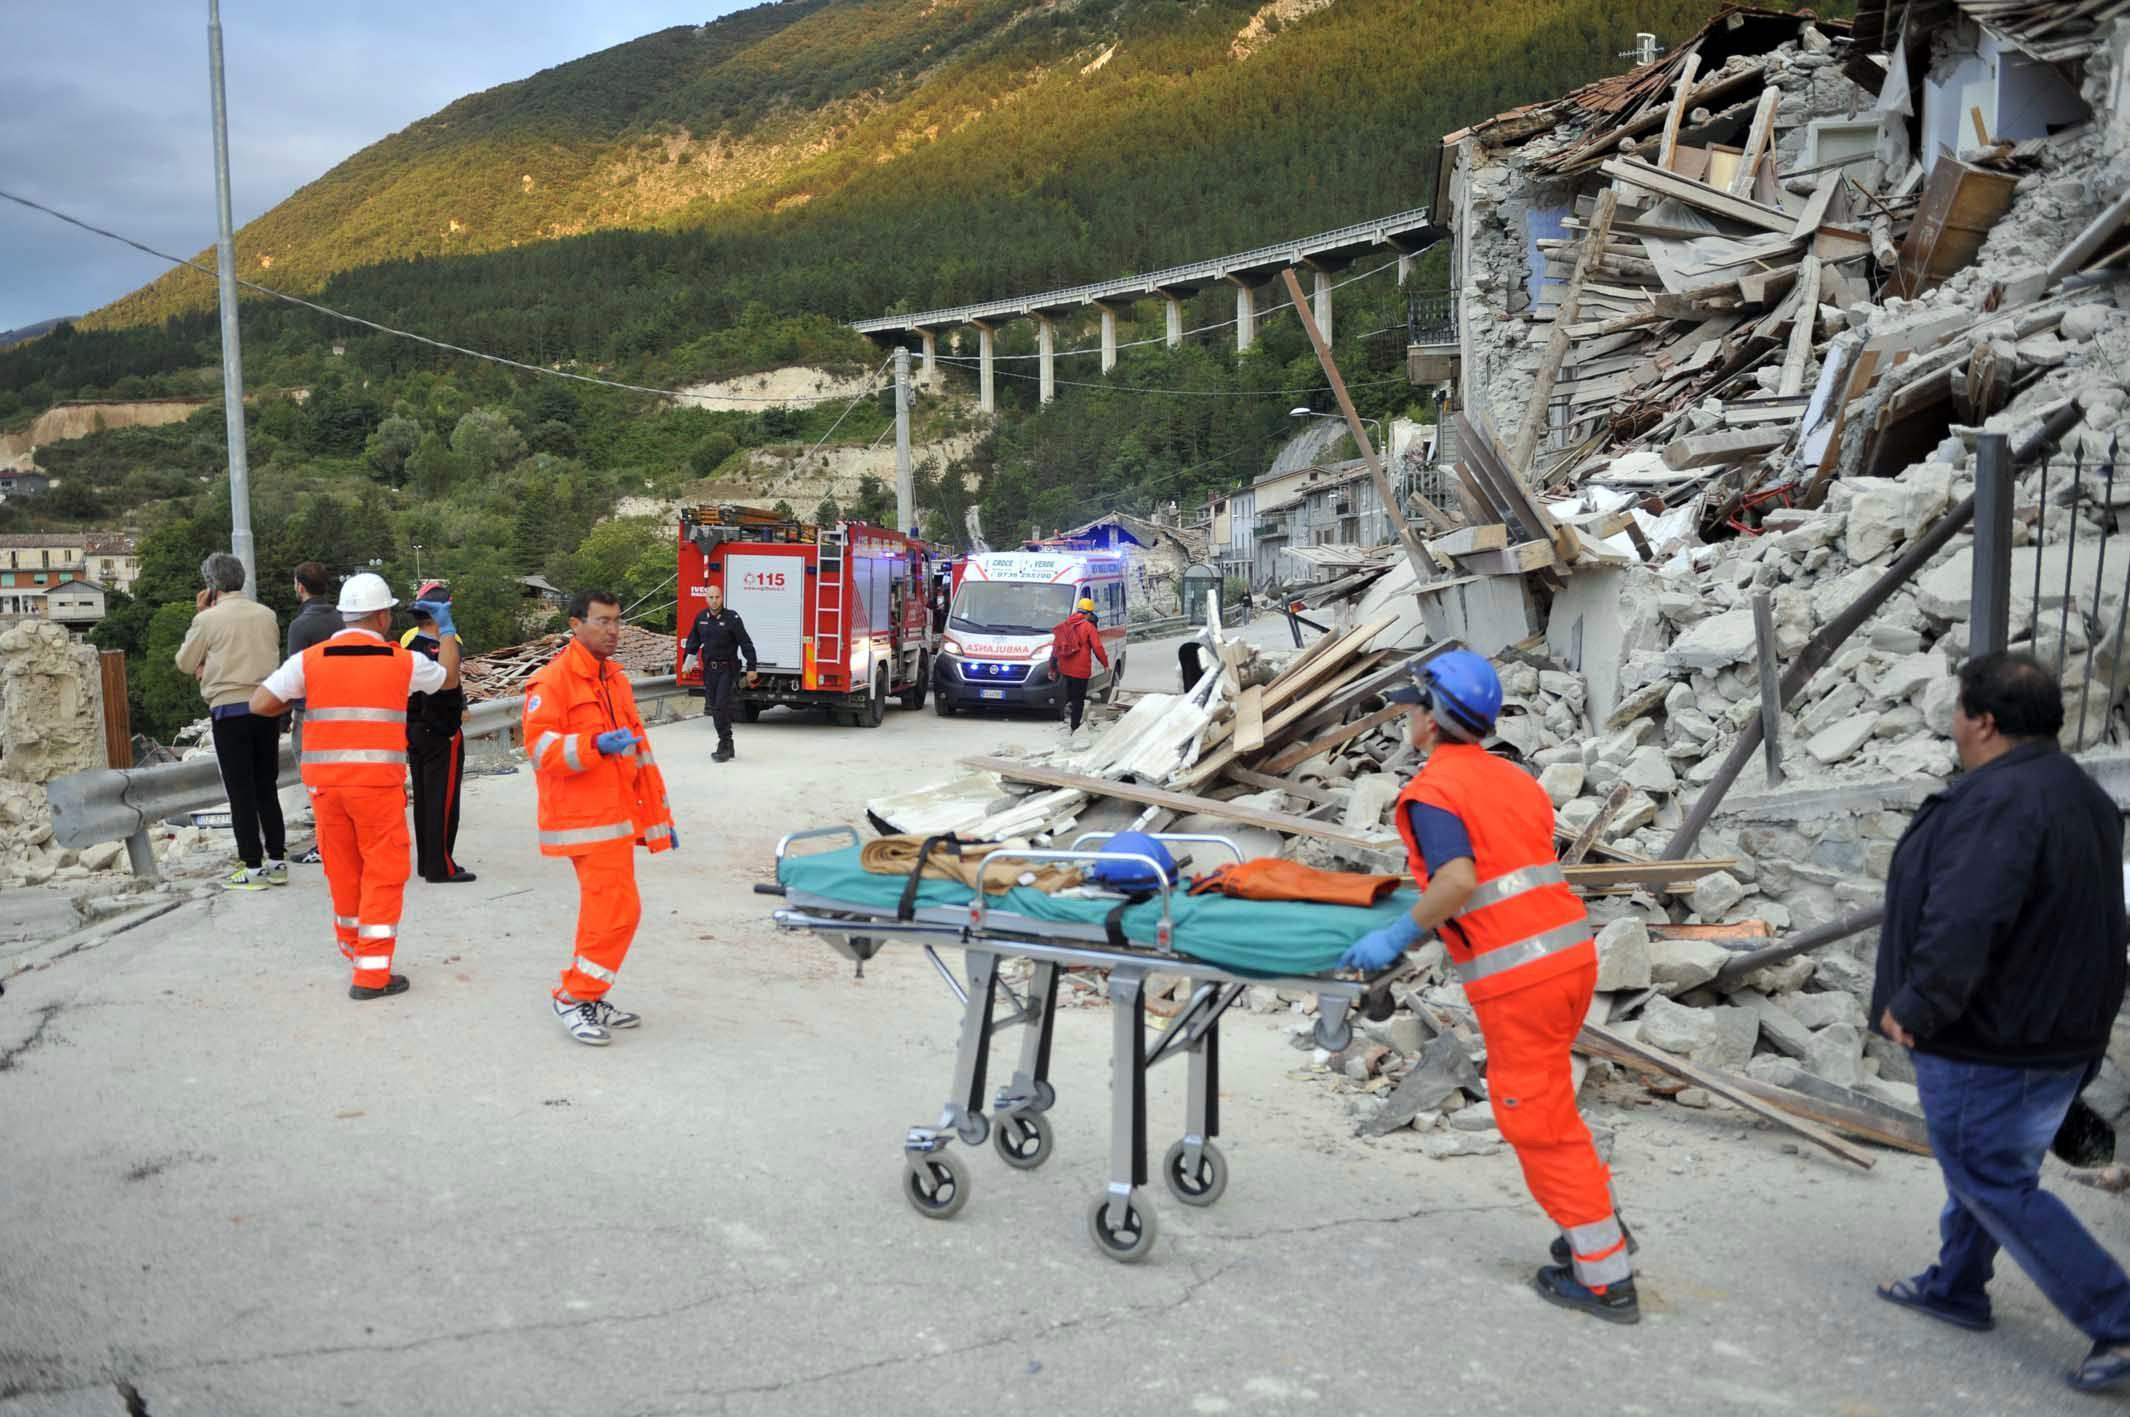 The rescuers in Pescara del Tronto, near Arquata del Tronto, Ascoli Piceno, in Marche Region, 24 August 2016. A 6.1 earthquake struck just after 3:30 a.m.. The quake was felt across a broad section of central Italy, including the capital Rome where people in homes in the historic center felt a long swaying followed by aftershocks. ANSA/ CRISTIANO CHIODI